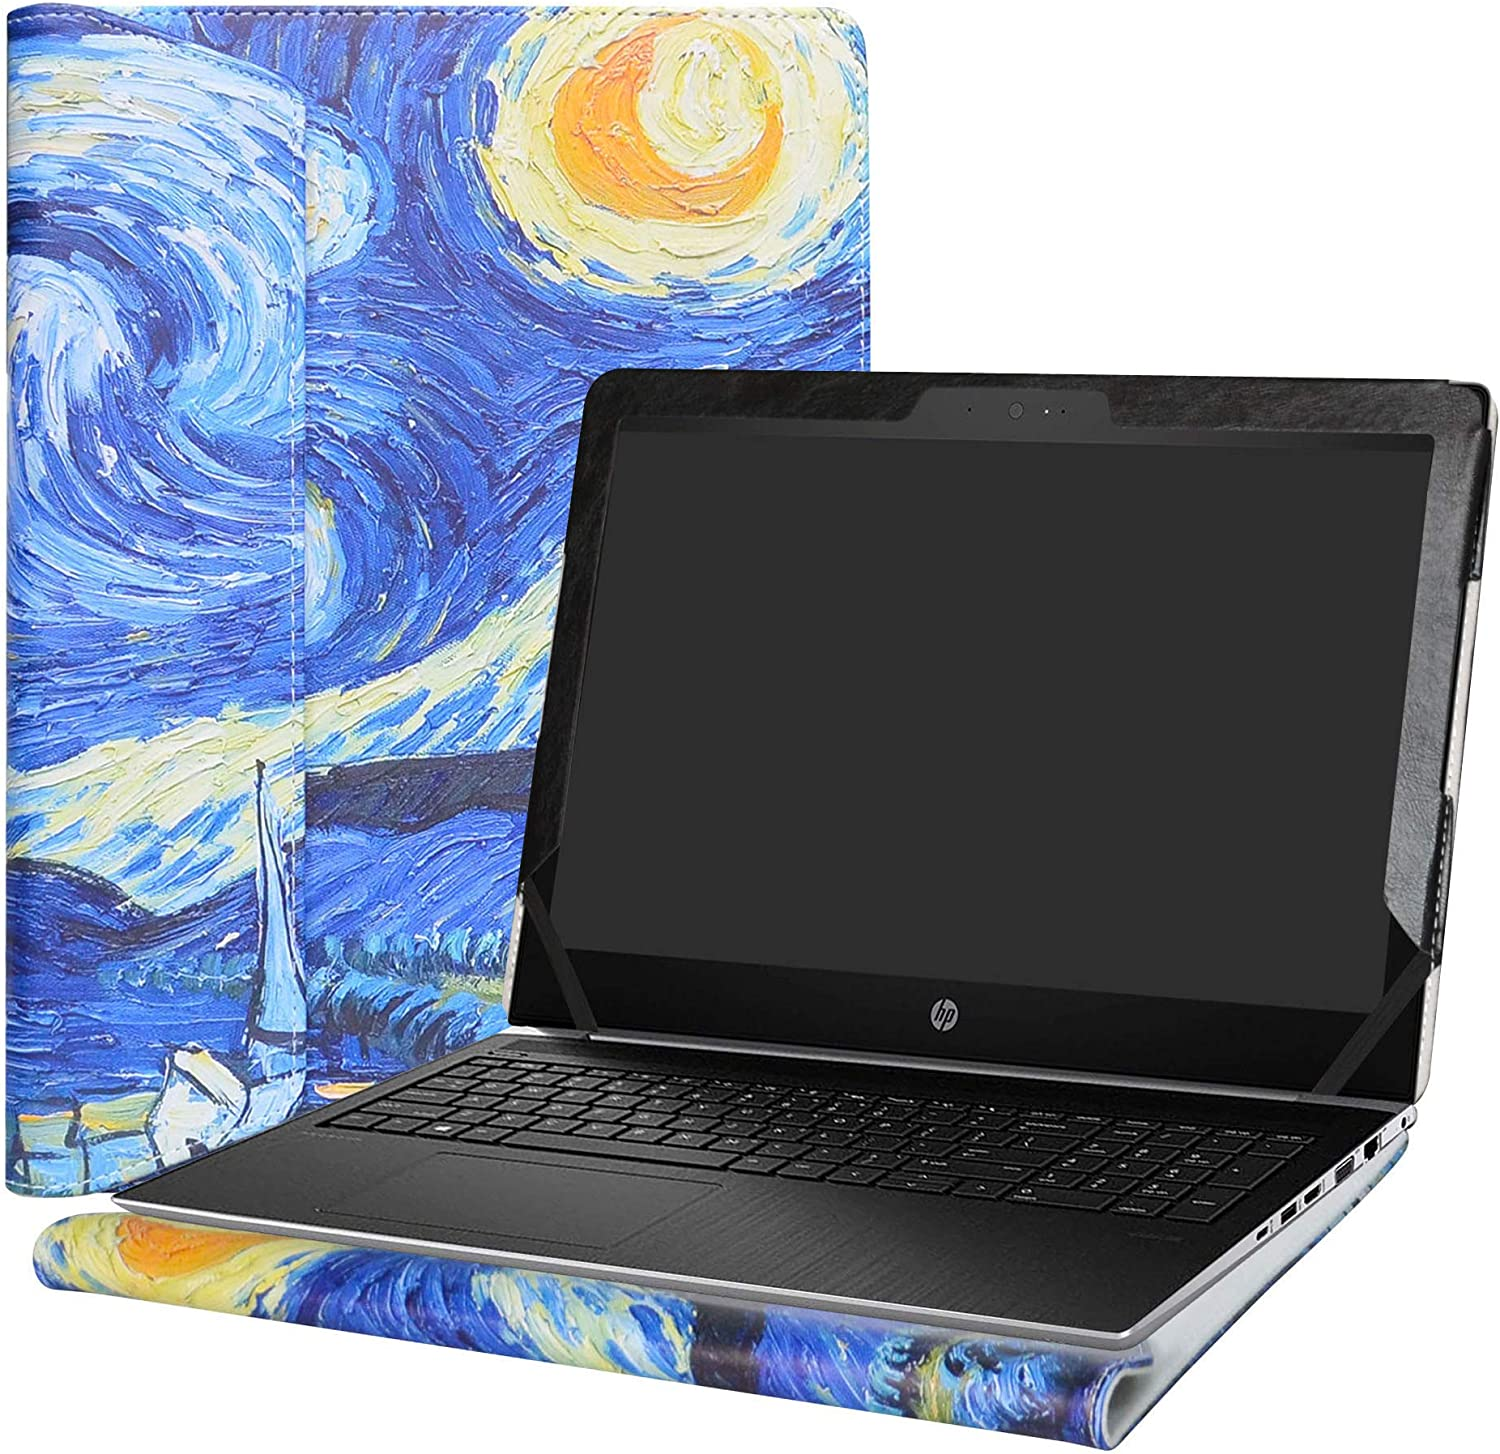 """Alapmk Protective Case for 14"""" HP ProBook 440 G5 & HP mt21/mt43 & HP ZBook 14u G4 & HP EliteBook 745 G4 G3 G2/EliteBook 840 G4 G3 G2/EliteBook 1040 G3 Laptop(Warning:Pls Note Picture 2),Starry Night"""